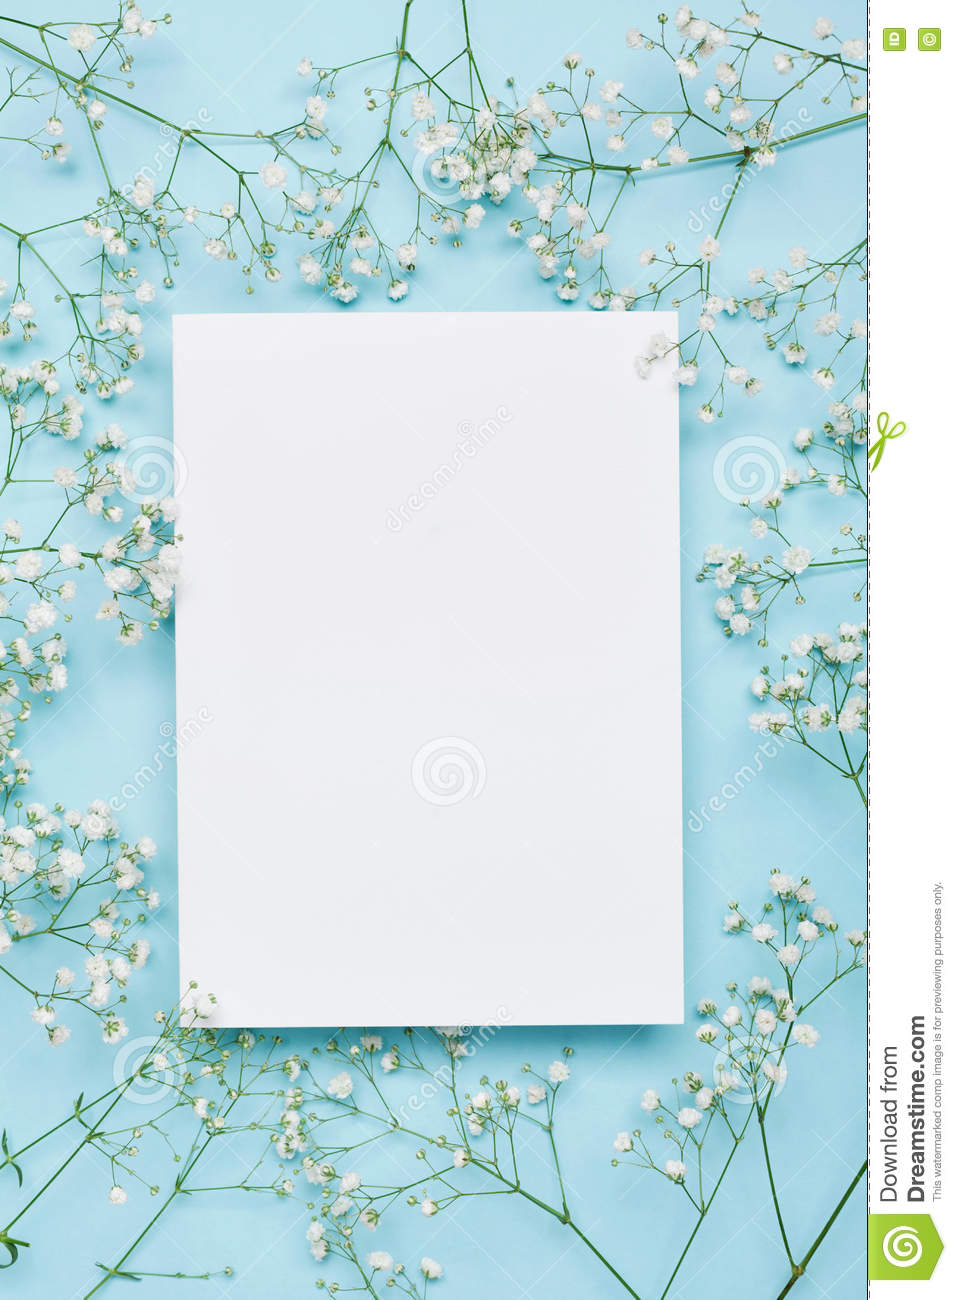 Wedding mockup with white paper list and flowers gypsophila on blue download wedding mockup with white paper list and flowers gypsophila on blue background from above izmirmasajfo